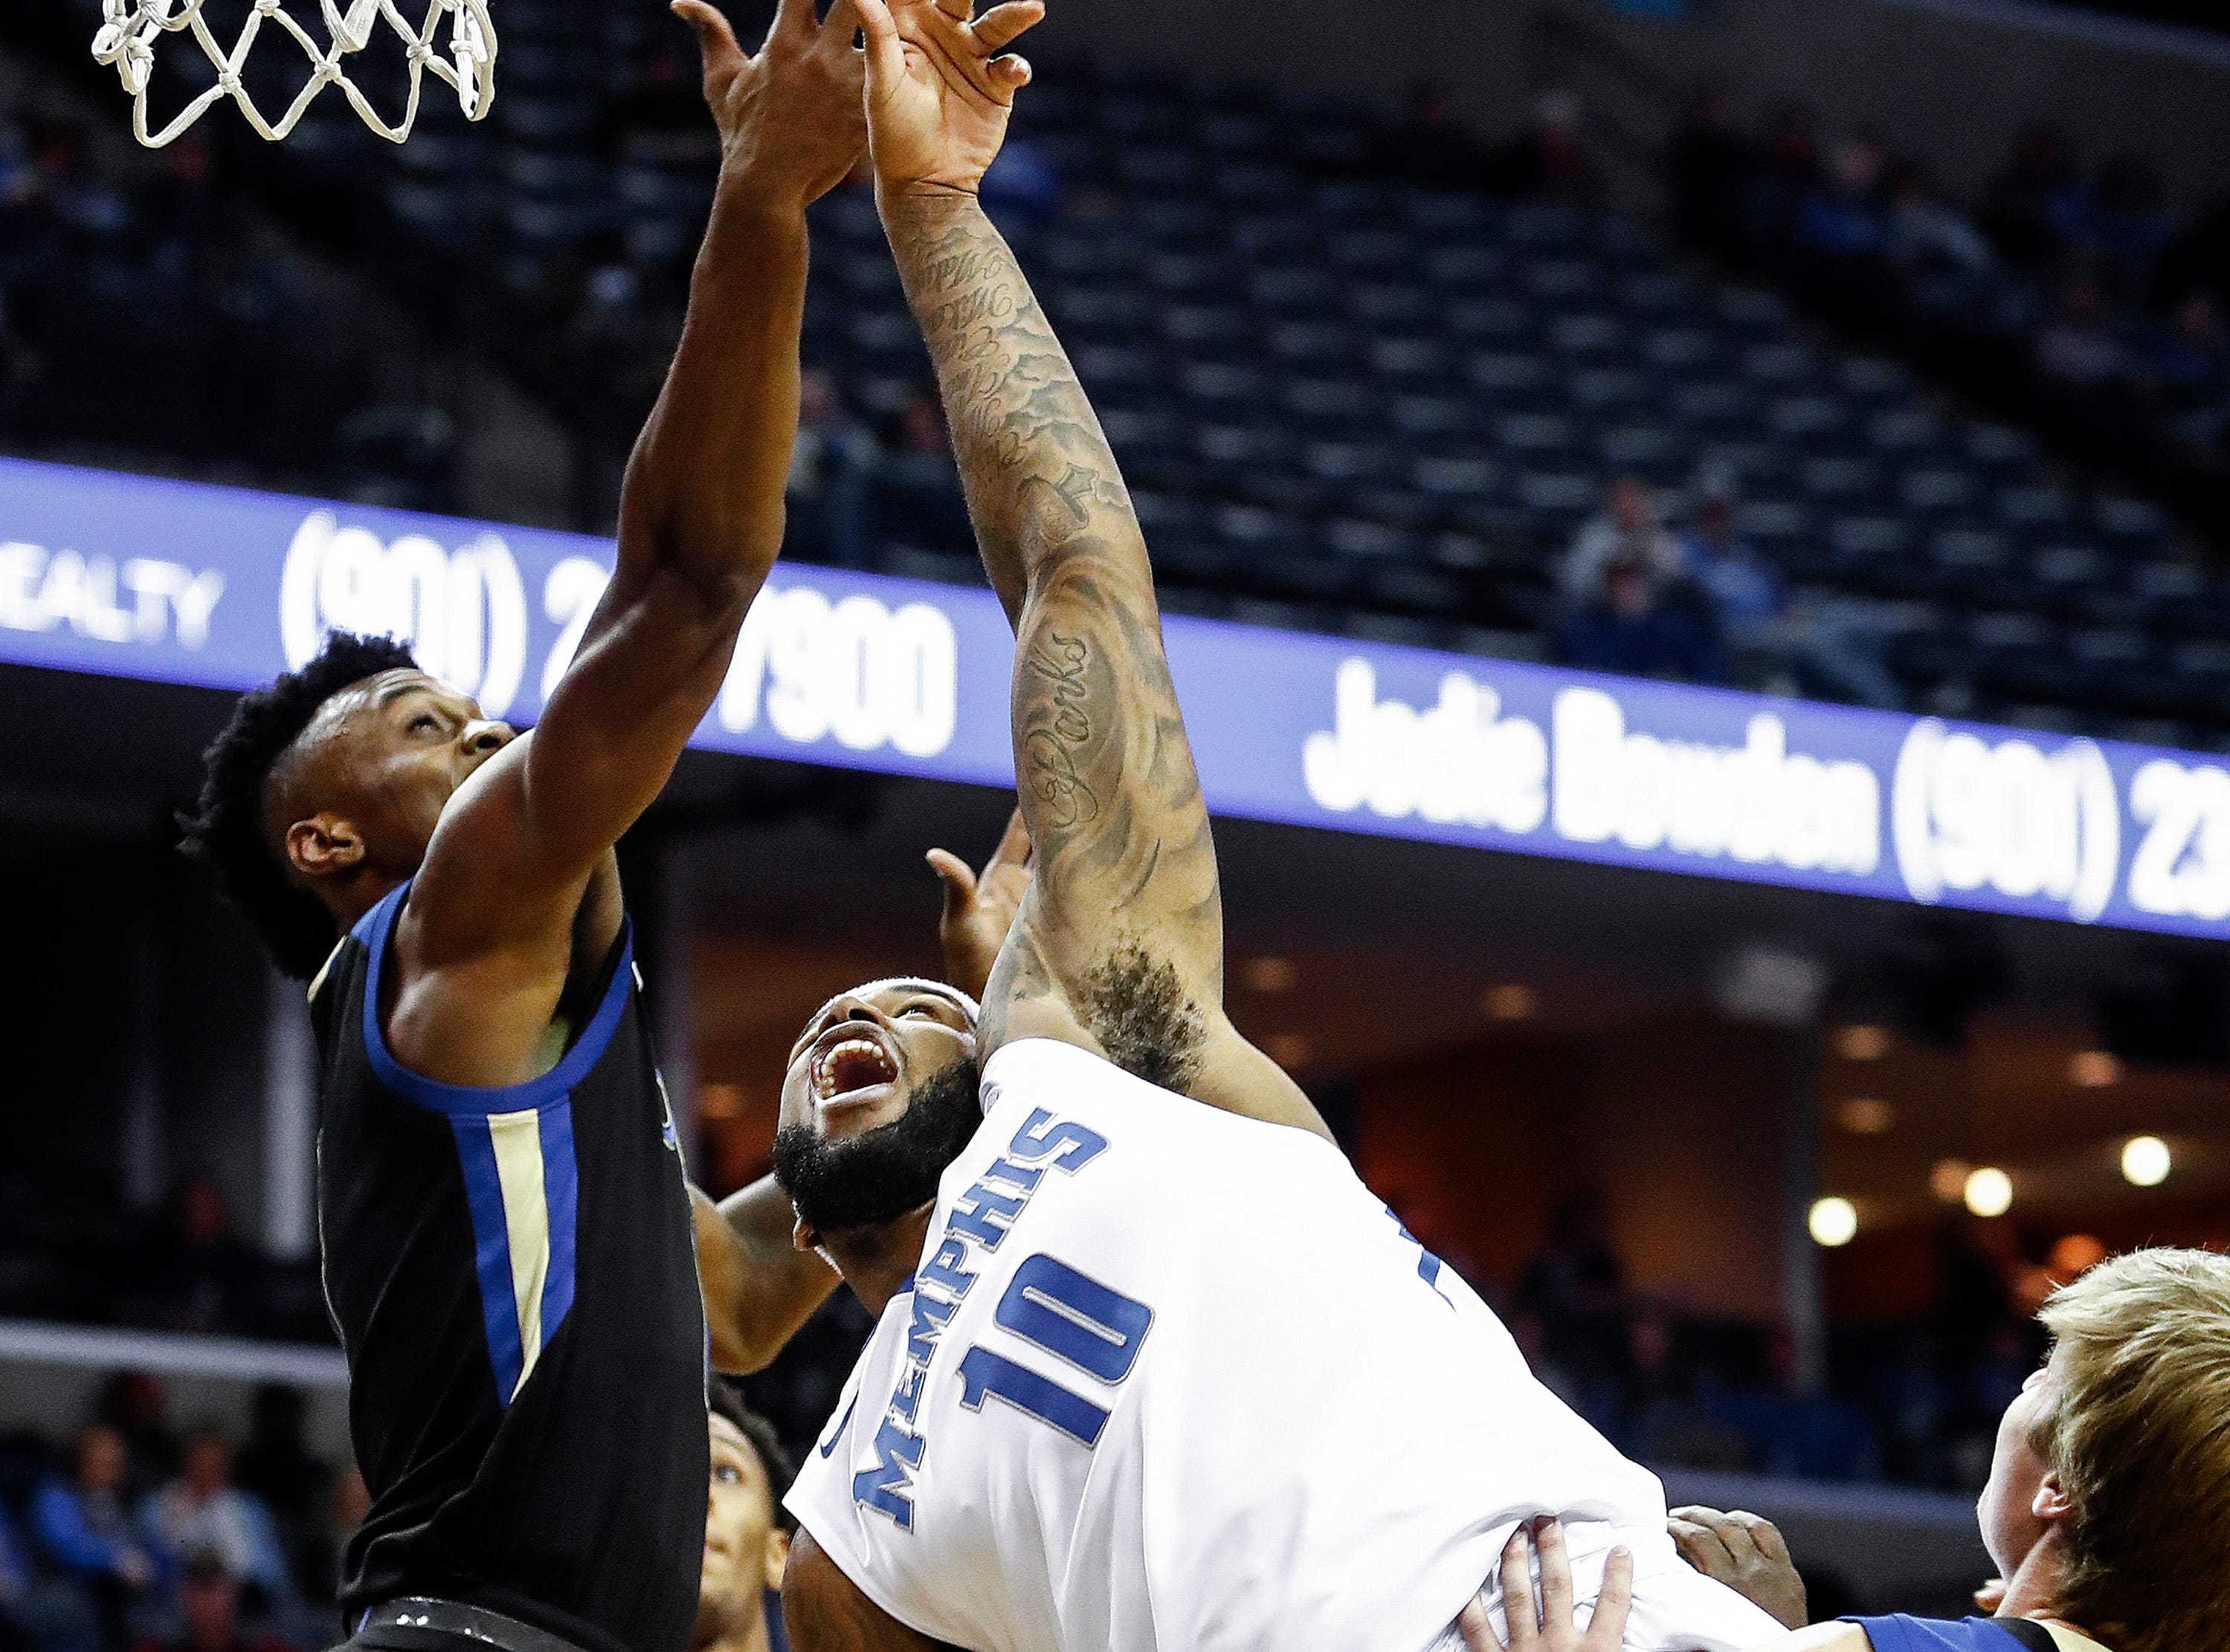 Memphis forward Mike Parks Jr., (right) battles the Tulsa defense for a rebound during first half action at the FedExForum in Memphis Tenn., Saturday, January 6, 2017. Parks had career-high 16 points during the 76-67 victory over Tulsa.